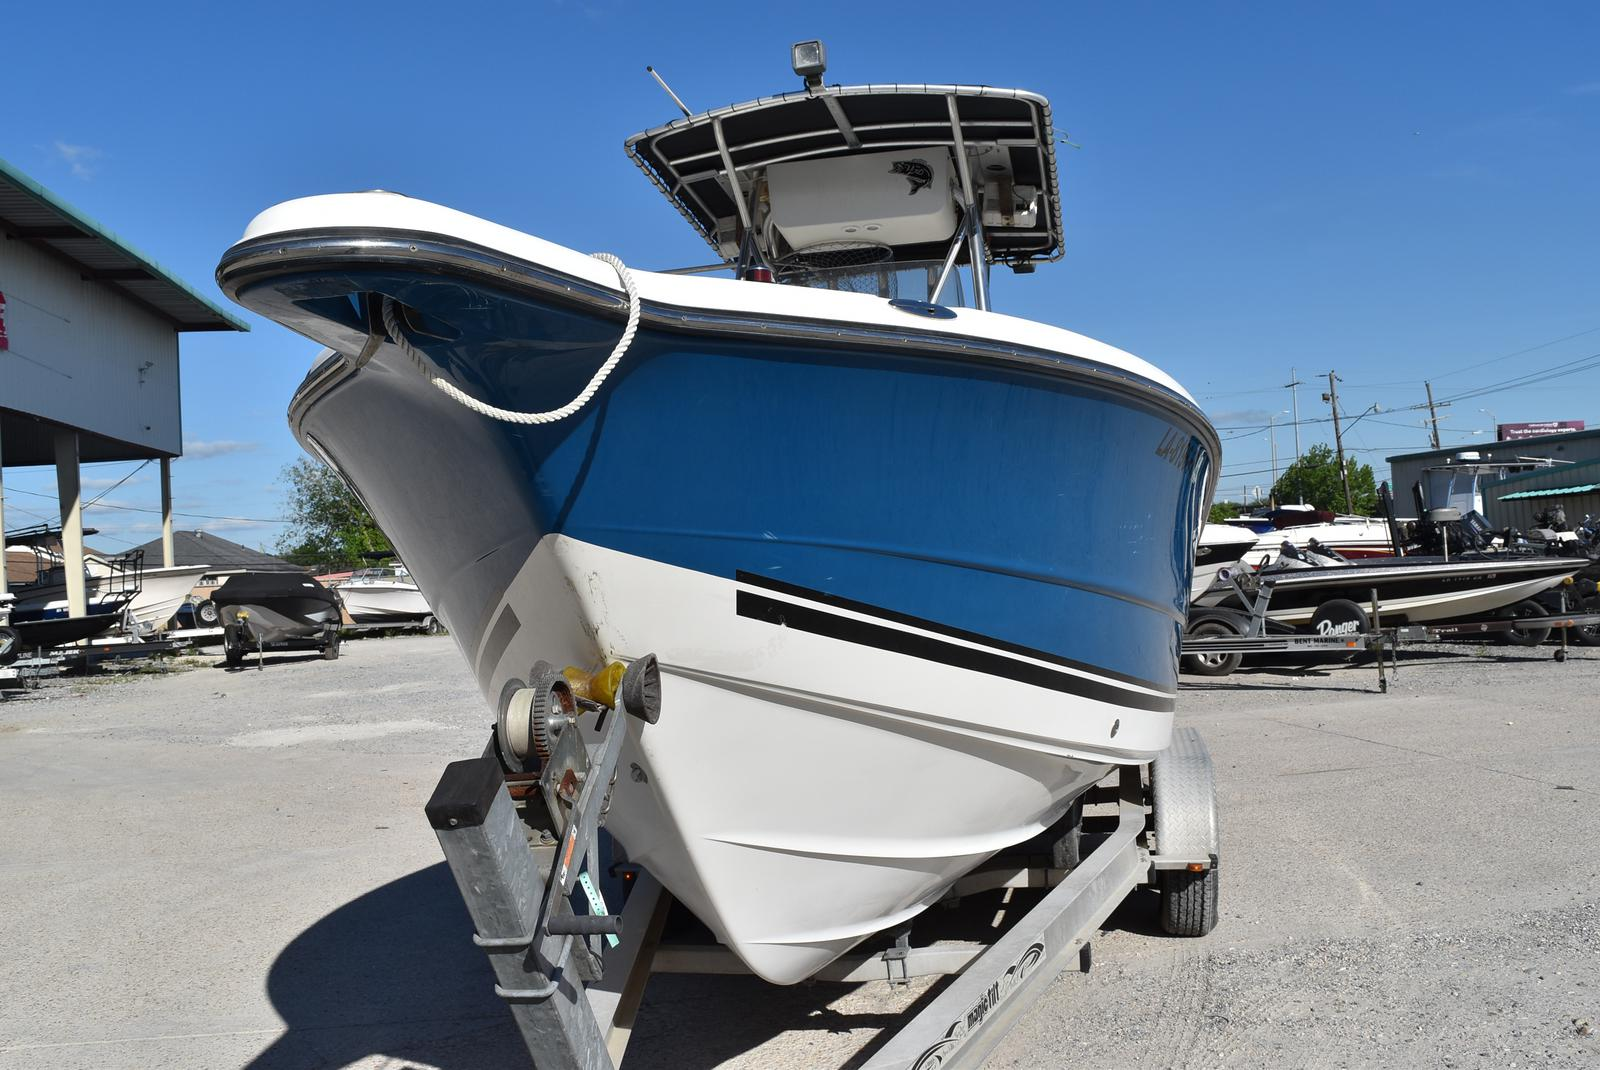 2006 Triton boat for sale, model of the boat is 2486 & Image # 20 of 24